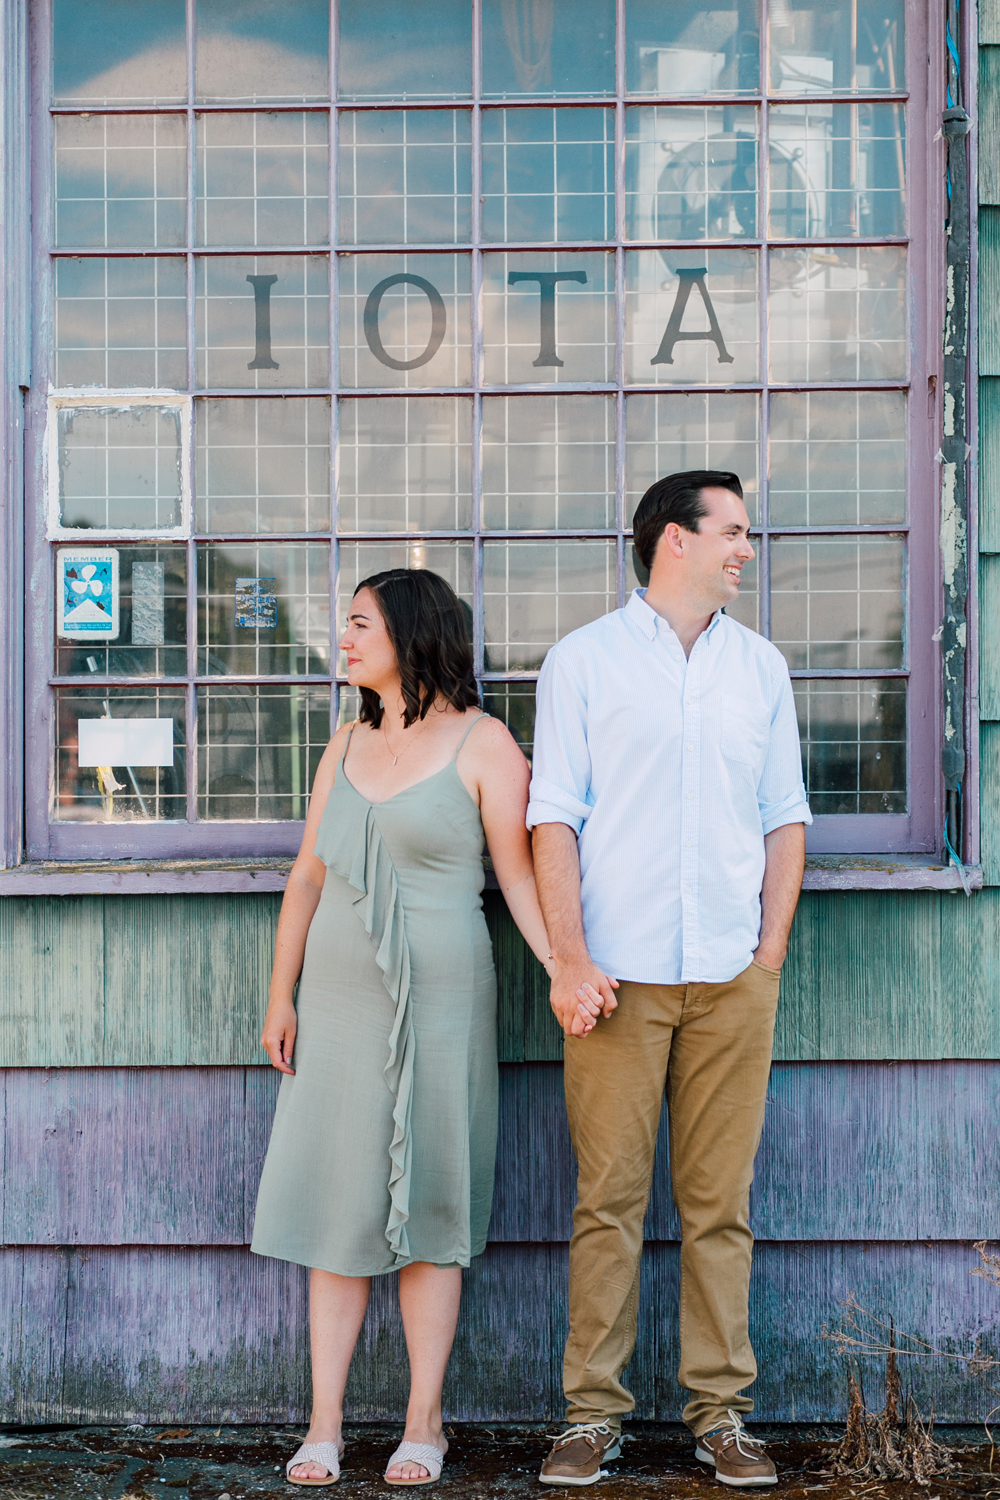 015-bellingham-engagement-photographer-katheyrn-moran-fairhaven-stones-throw-katie-max.jpg